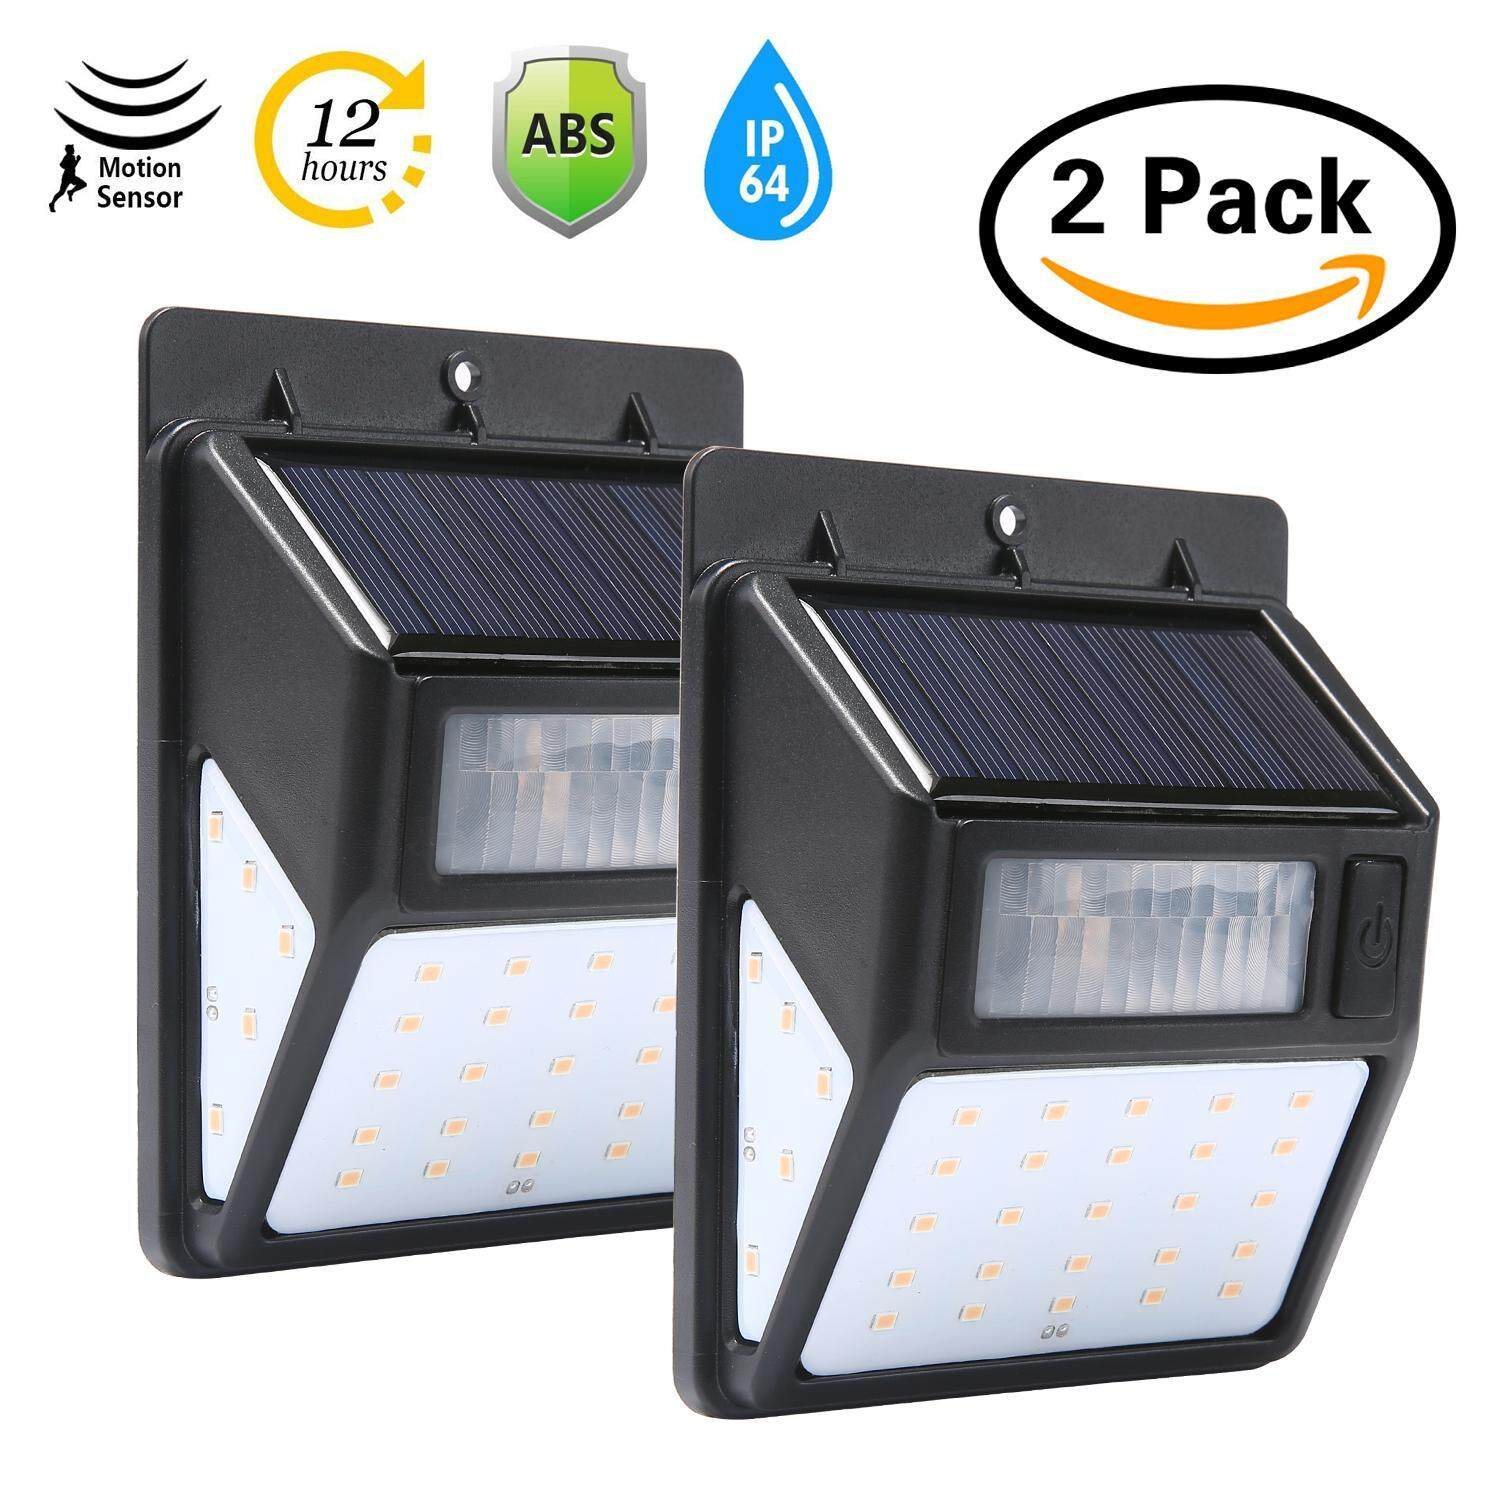 Vankel Solar Lights Outdoor Motion Sensor Security Light 20LED for Garage Path Wall Walkway Patio Deck Shed